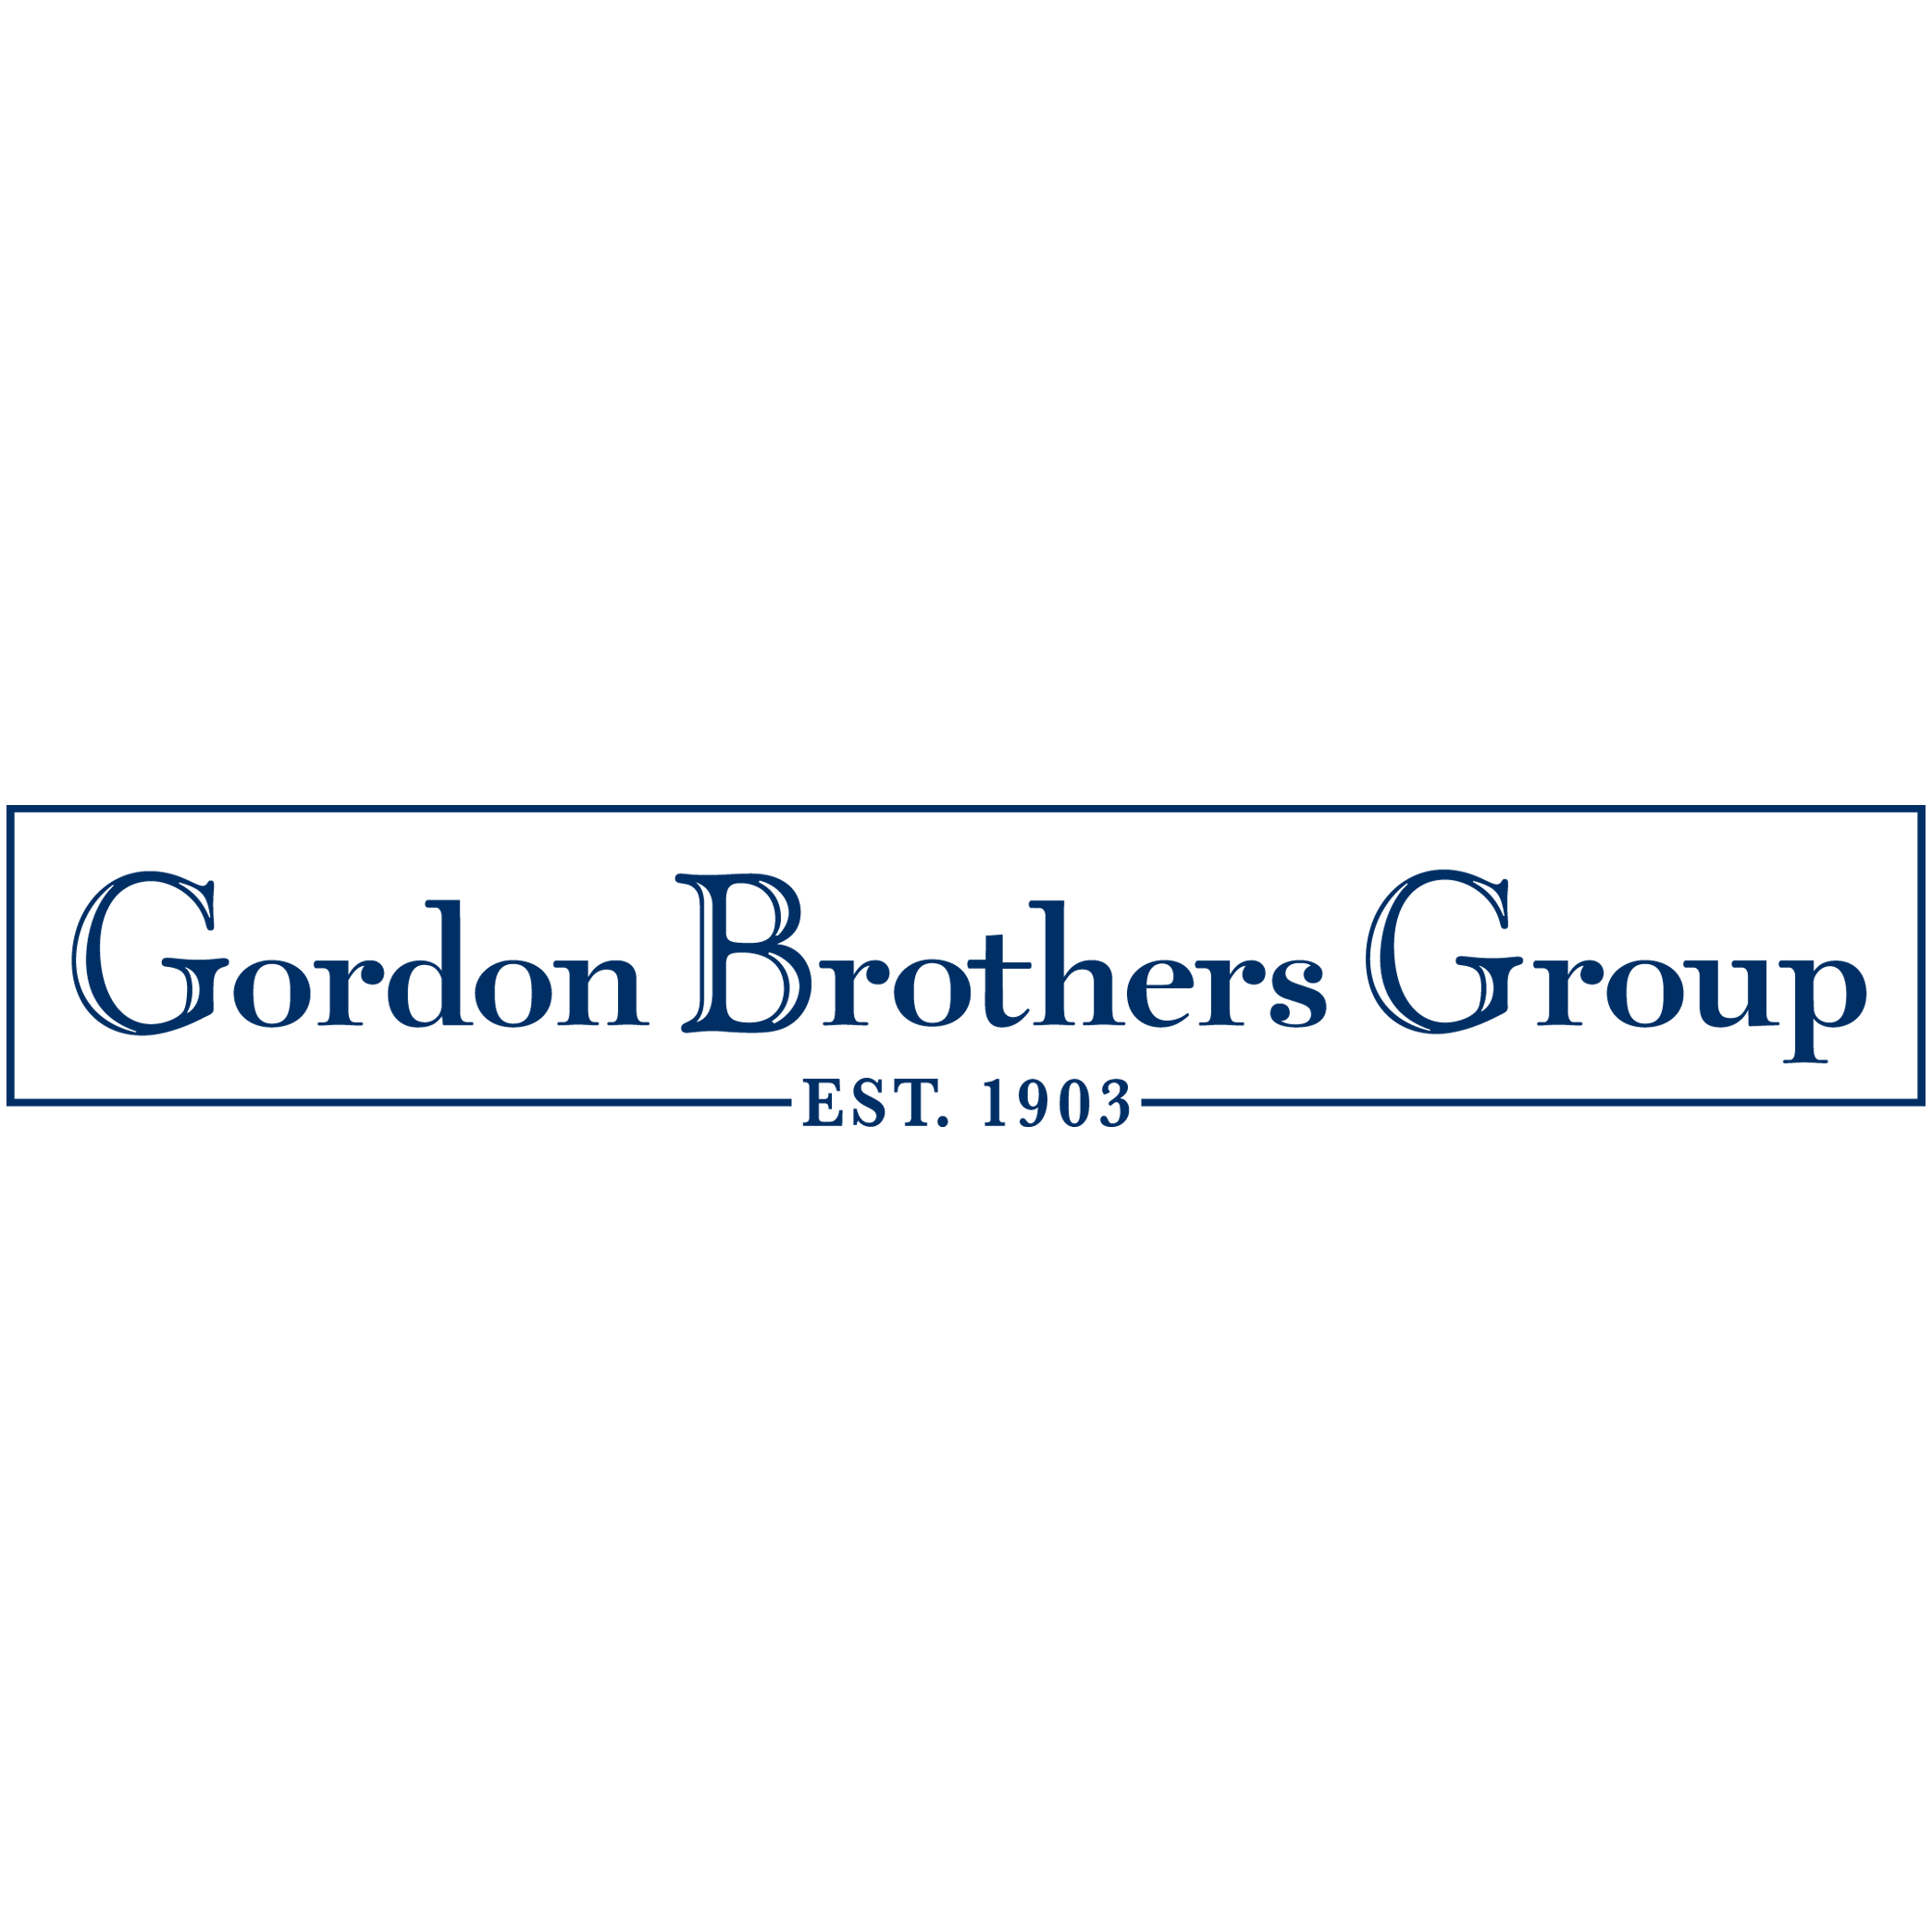 Gordon Brothers Group